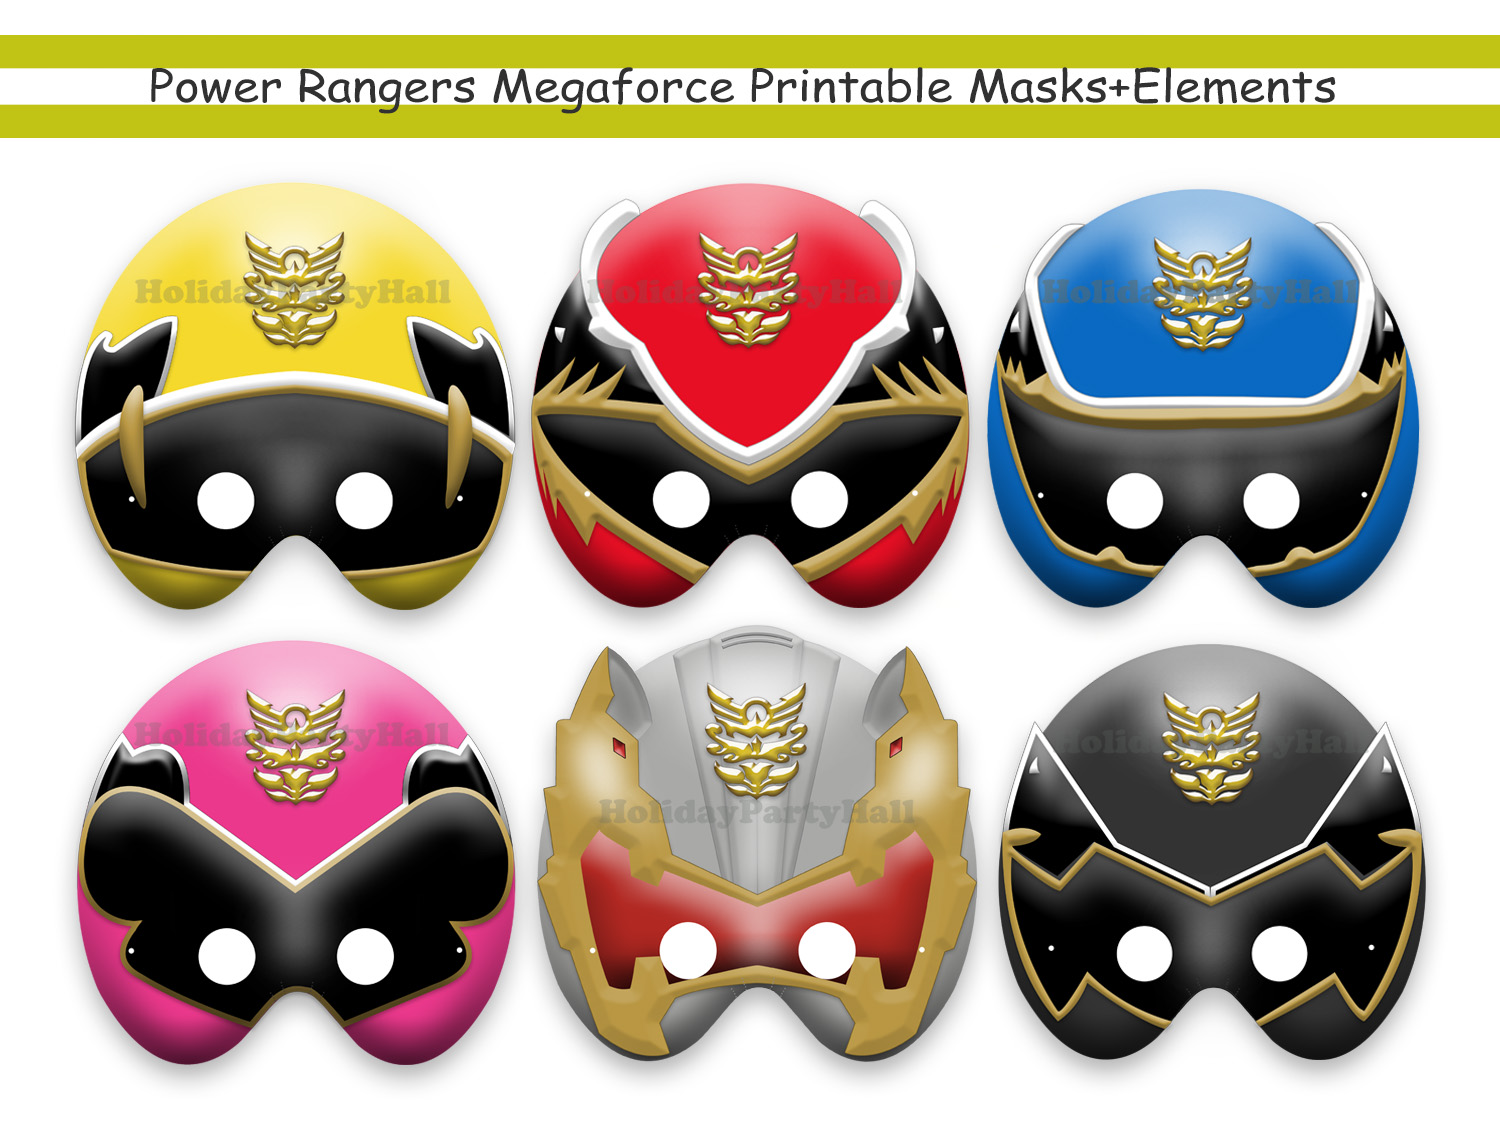 graphic about Power Ranger Mask Printable identify One of a kind Electricity Rangers Megaforce Printable Masks+Things,occasion,mask,birthday,Yellow,Crimson,Blue,Crimson,Silver,Black,invitation,image booth prop